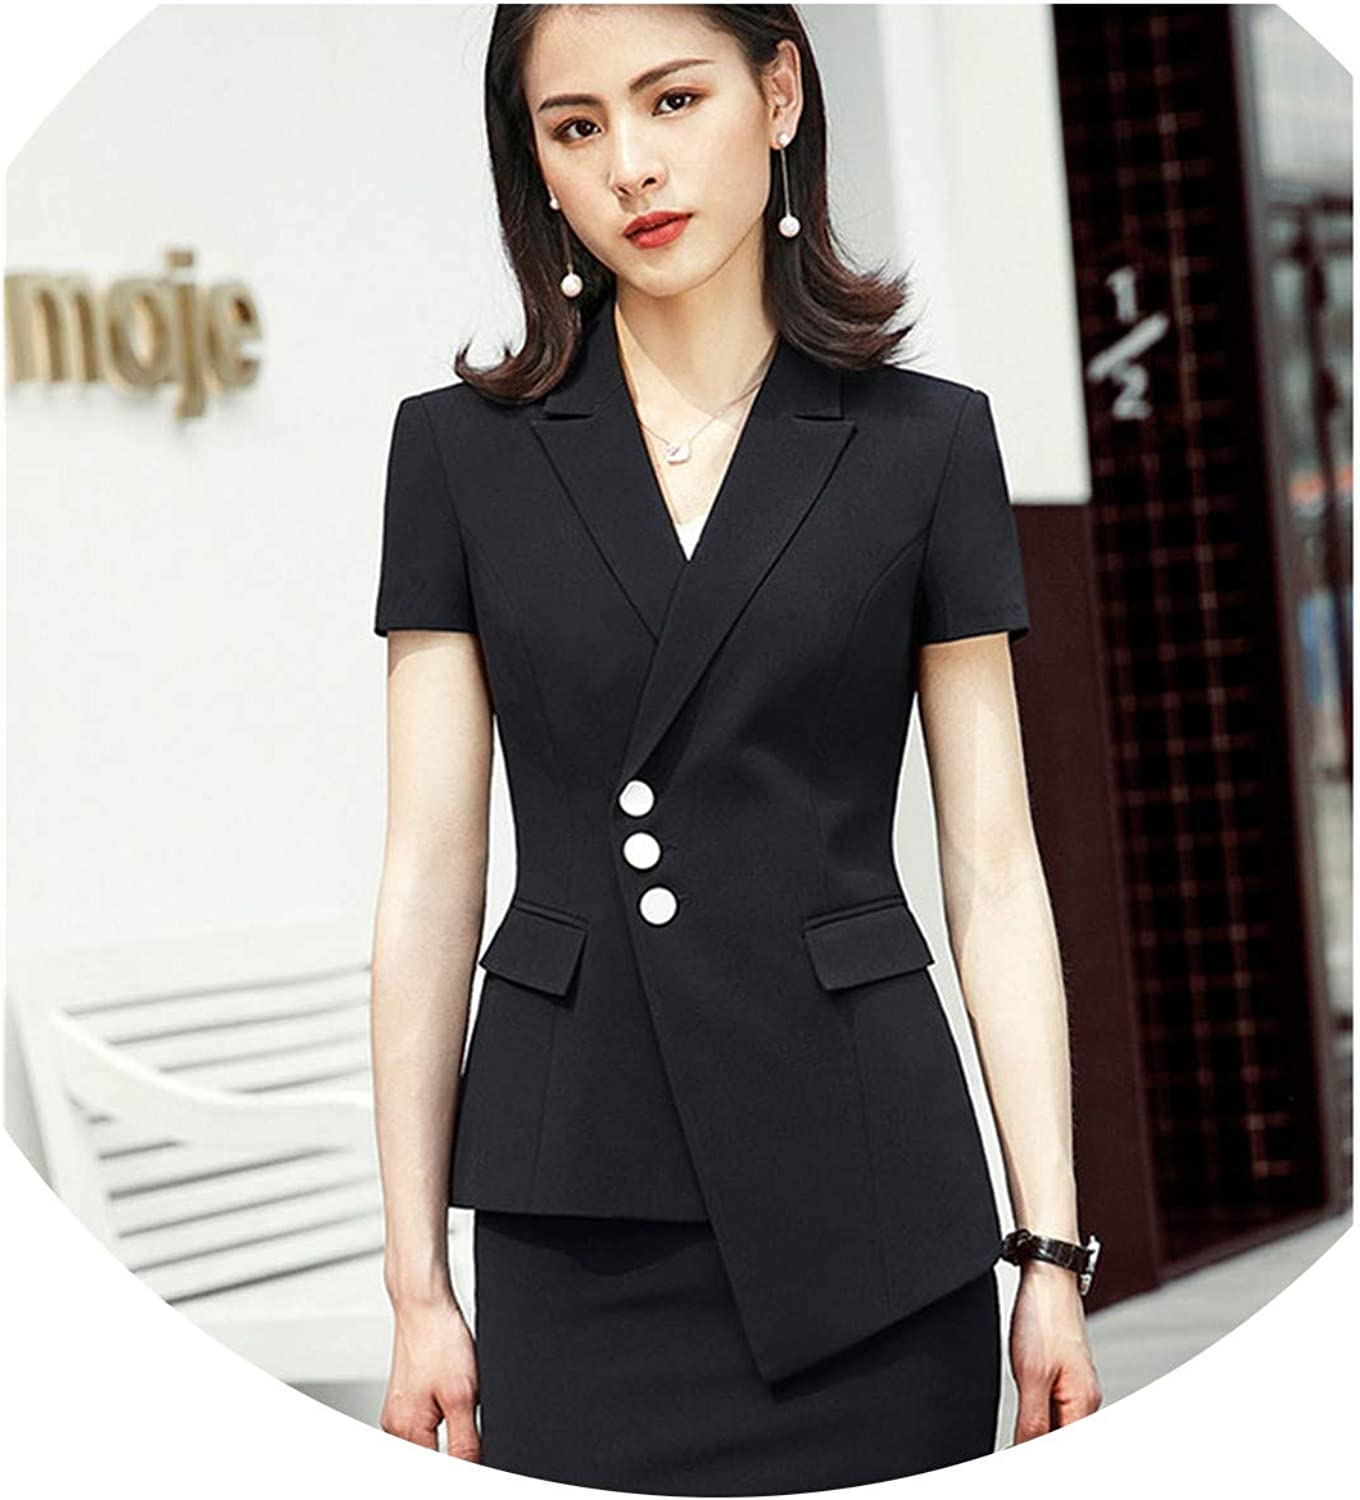 Summer Clothes for Women Pant Suit OL Formal Business Blazer and Trousers Work wear,Black Coat and Skirt,4XL